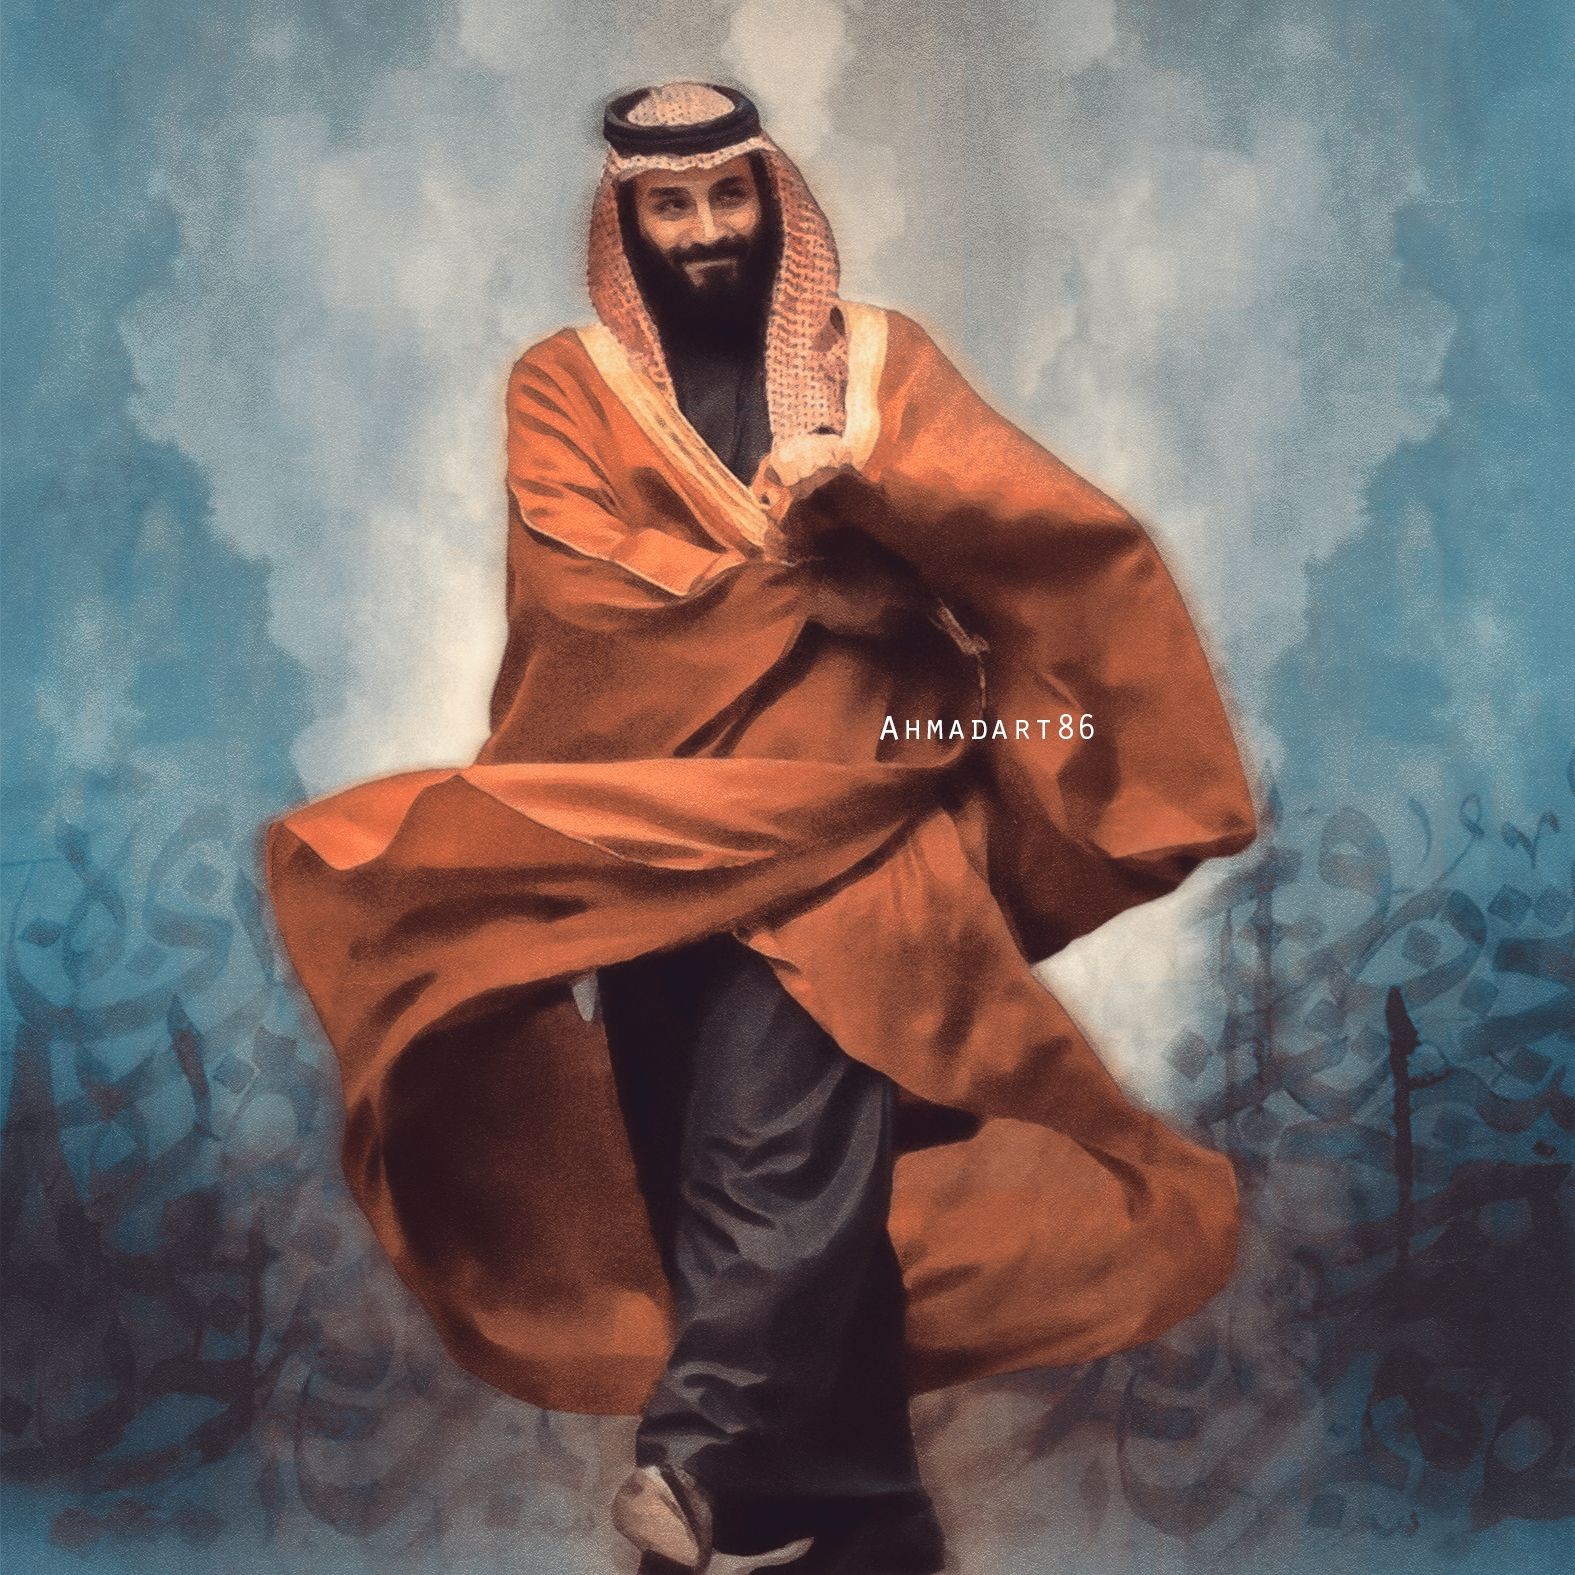 محمد بن سلمان Arabian Art Islamic Art Arabic Art